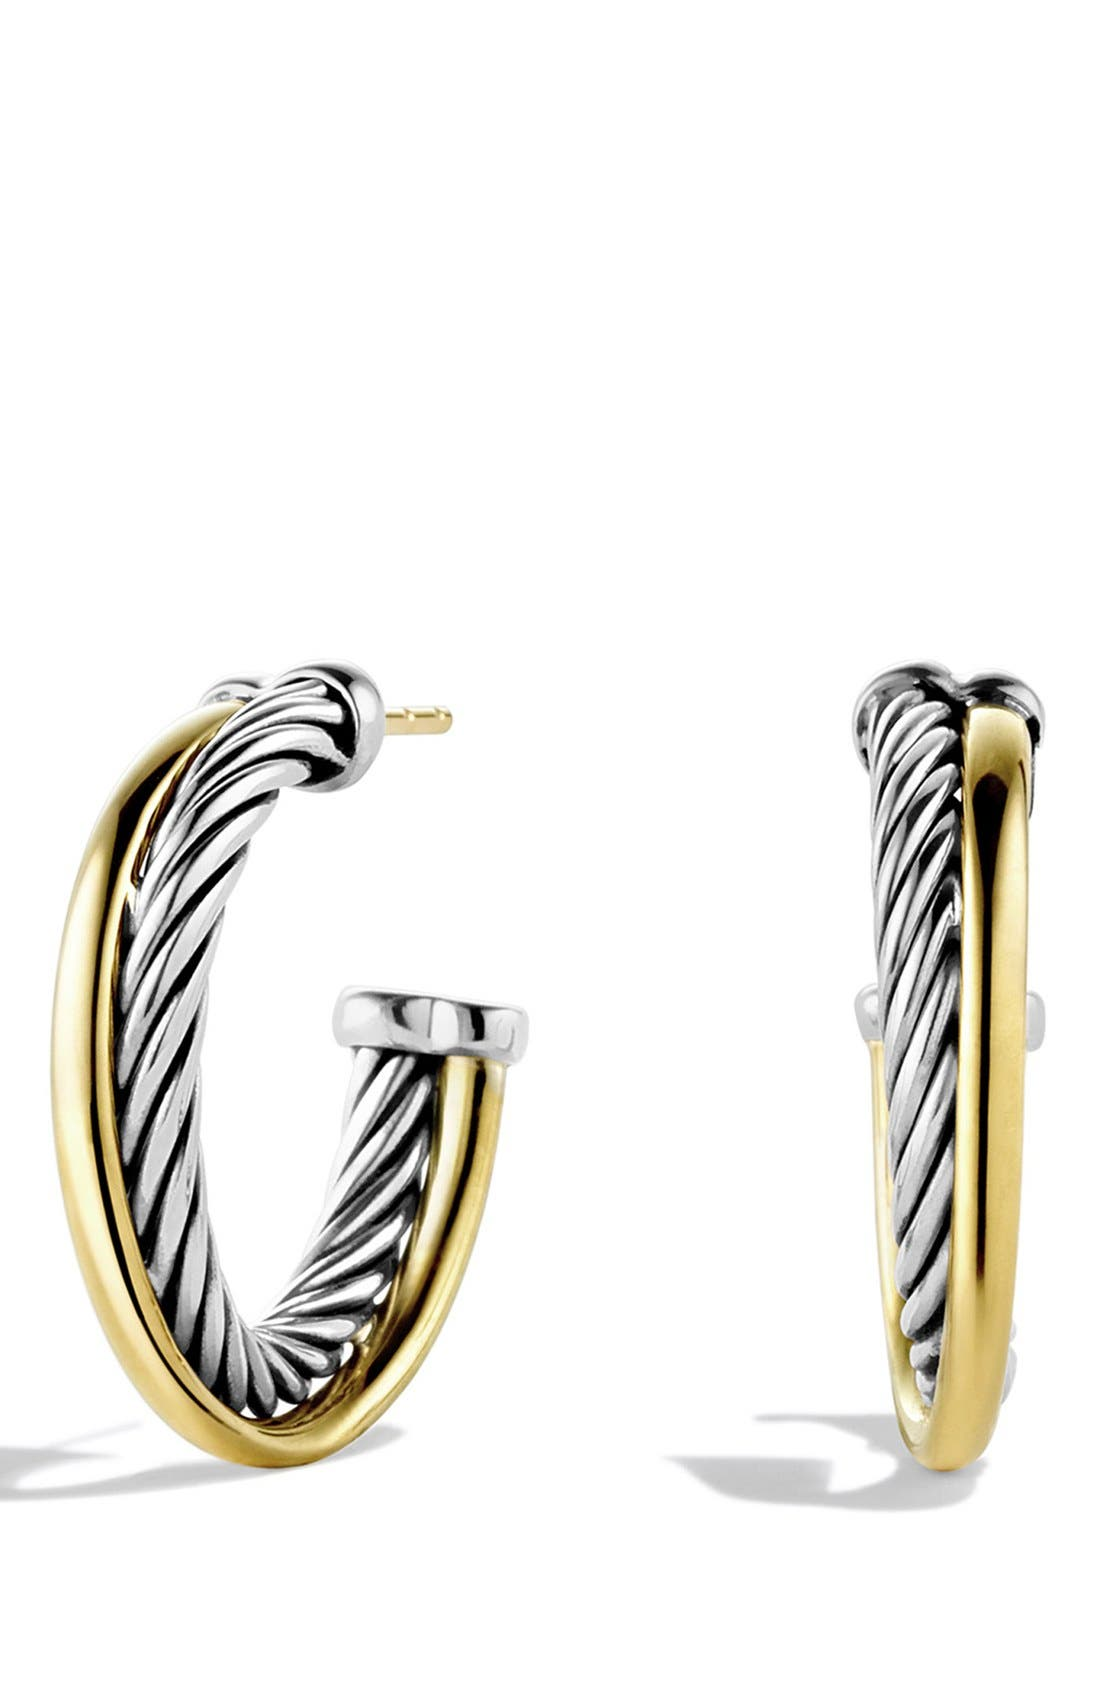 Main Image - David Yurman 'Crossover' Small Hoop Earrings with Gold